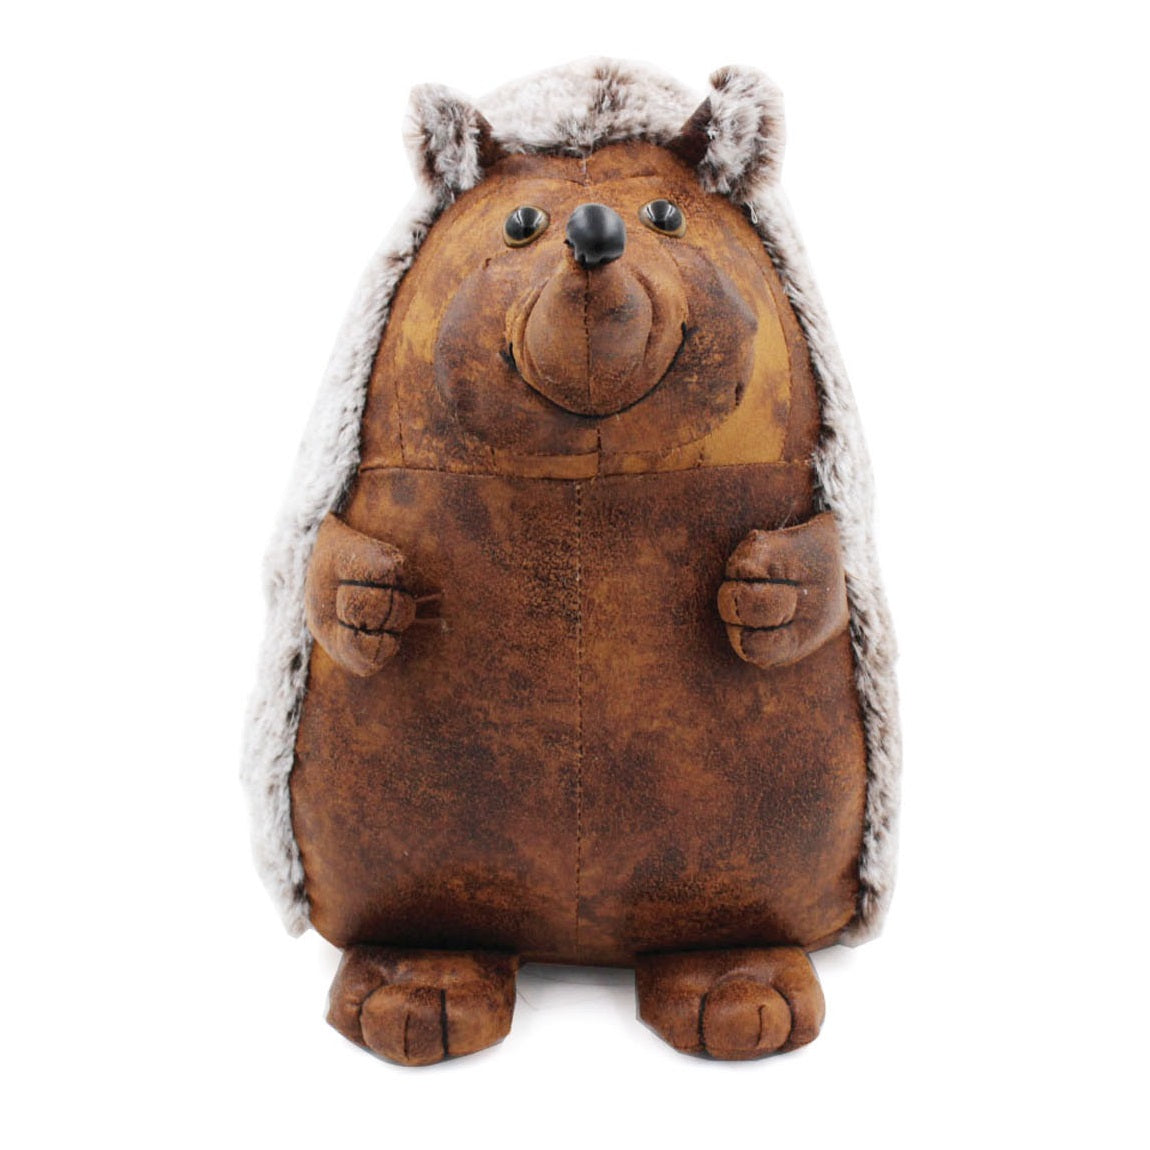 Lesser & Pavey LP40959 Sitting Hedgehog Door Stop